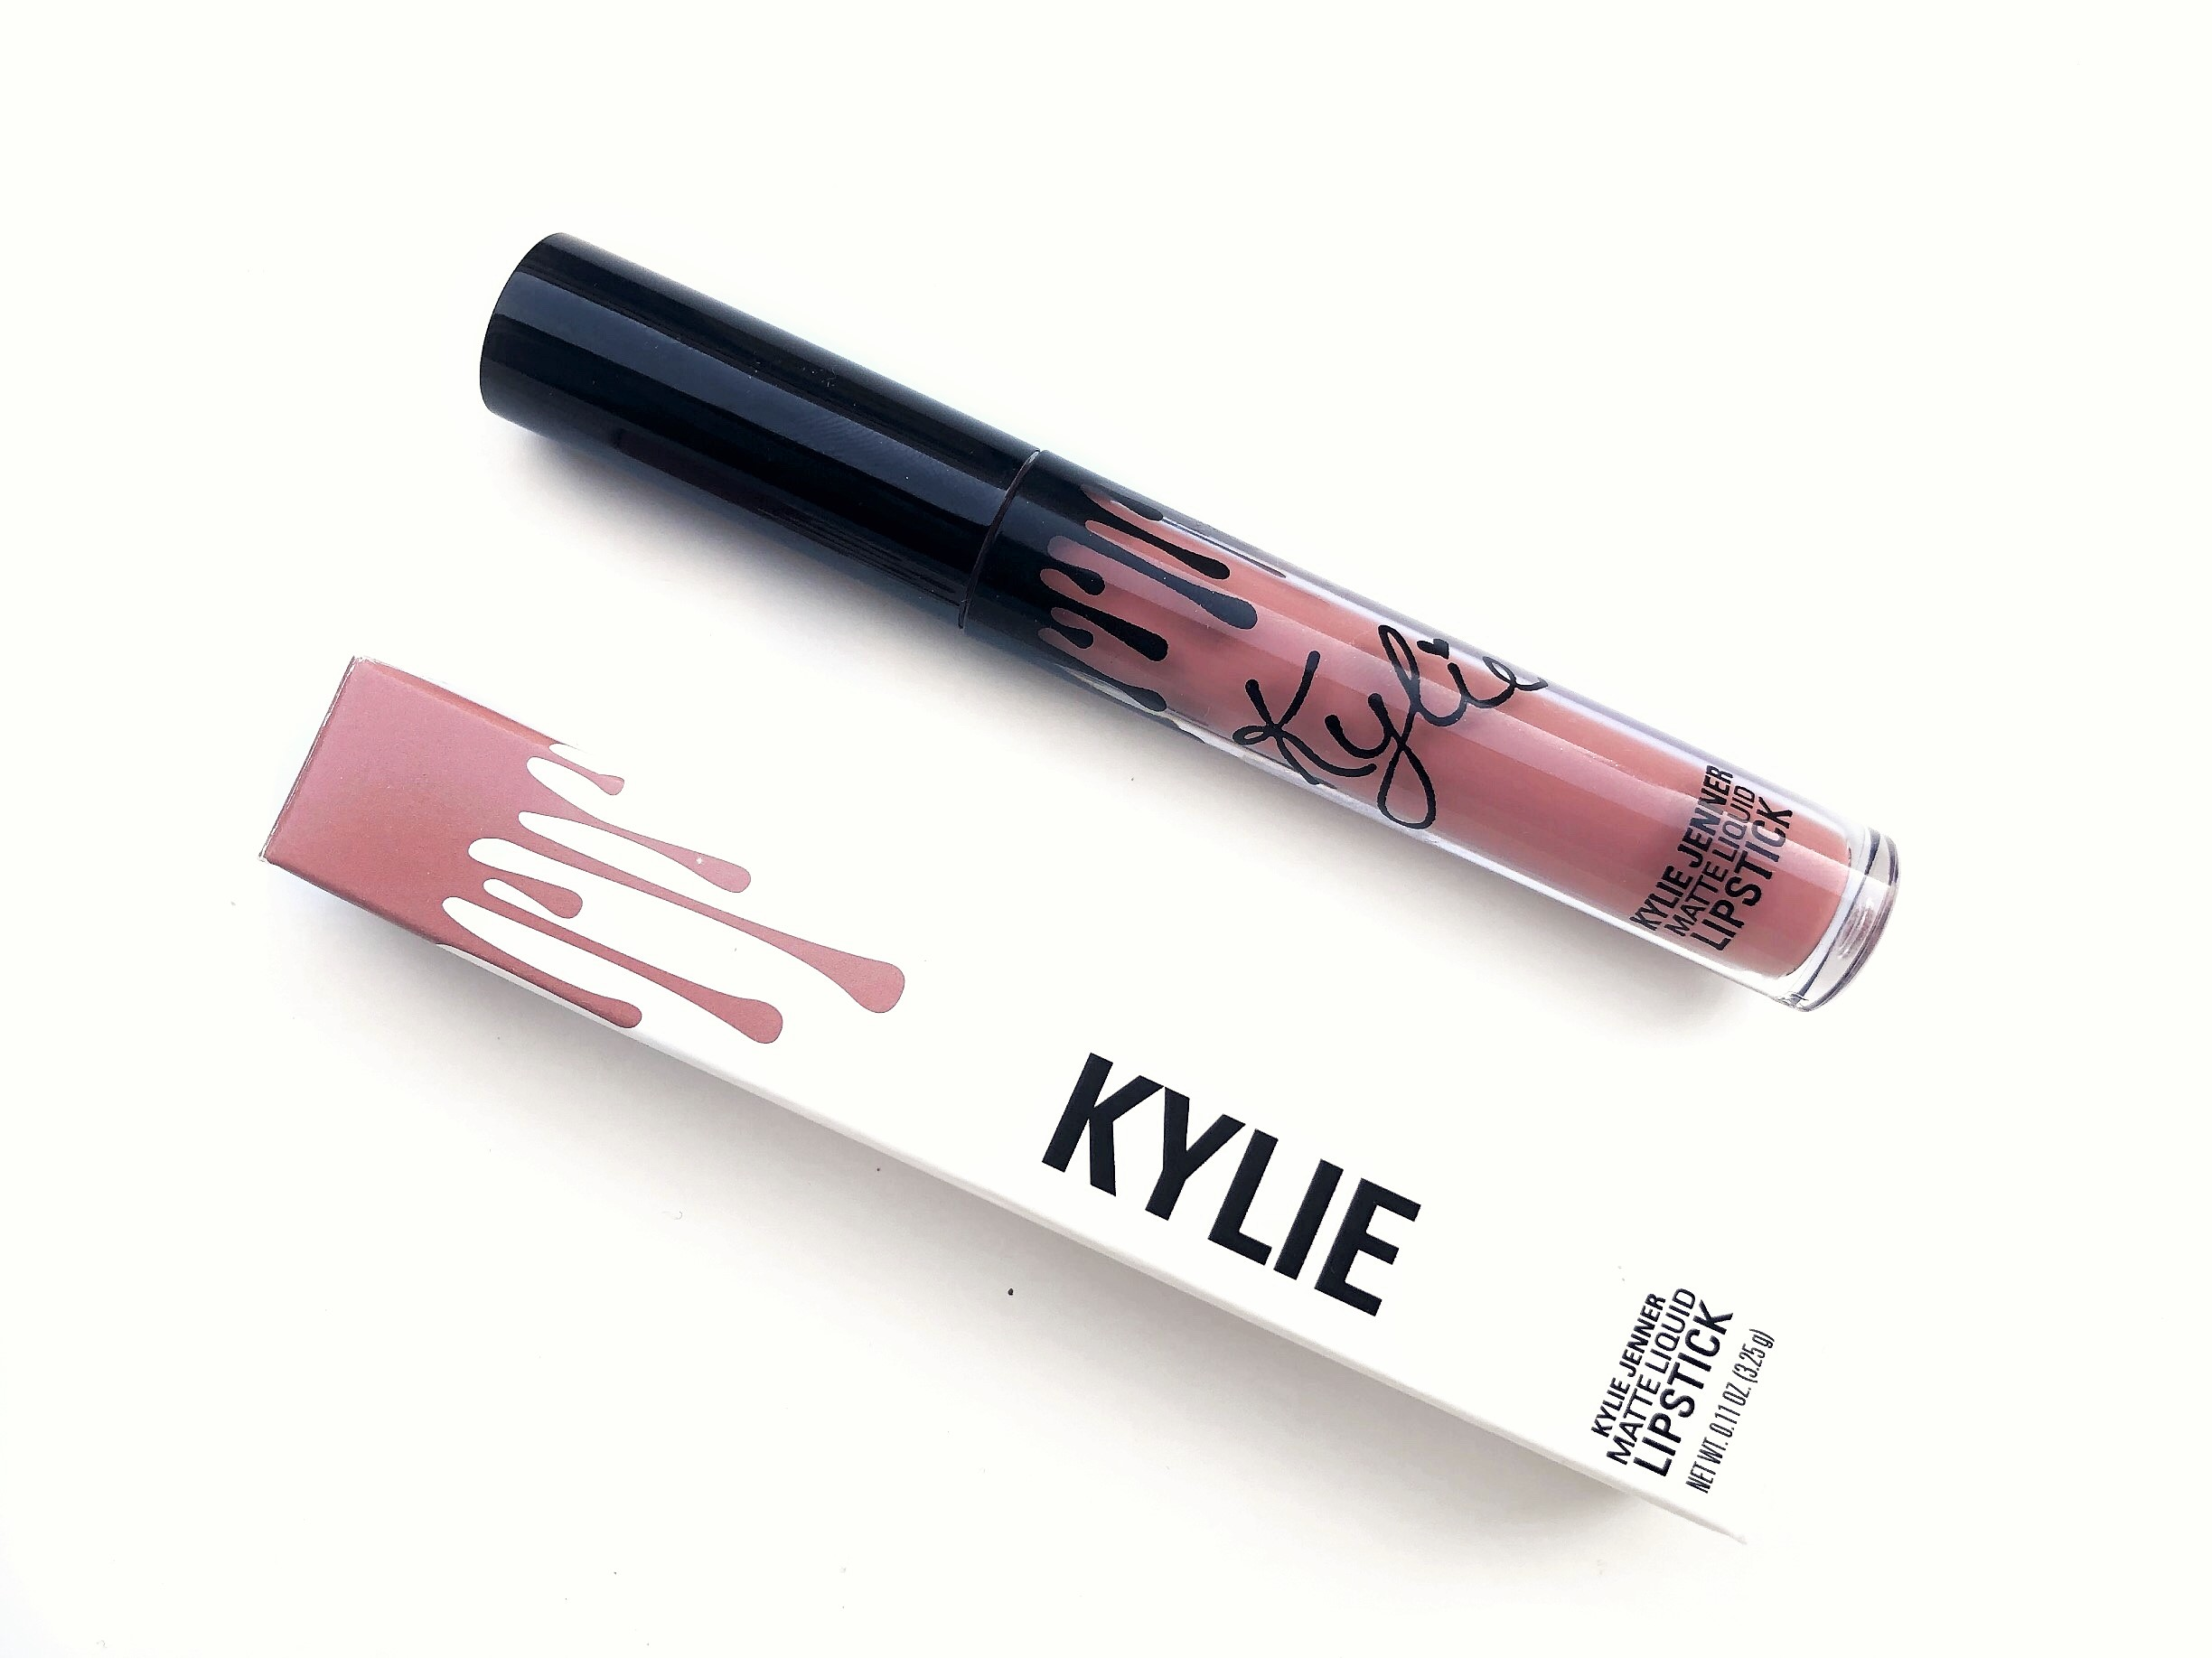 Review-Kylie-Cosmetics-Candy-K-Matte-Liquid-Lipstick-3 (3)